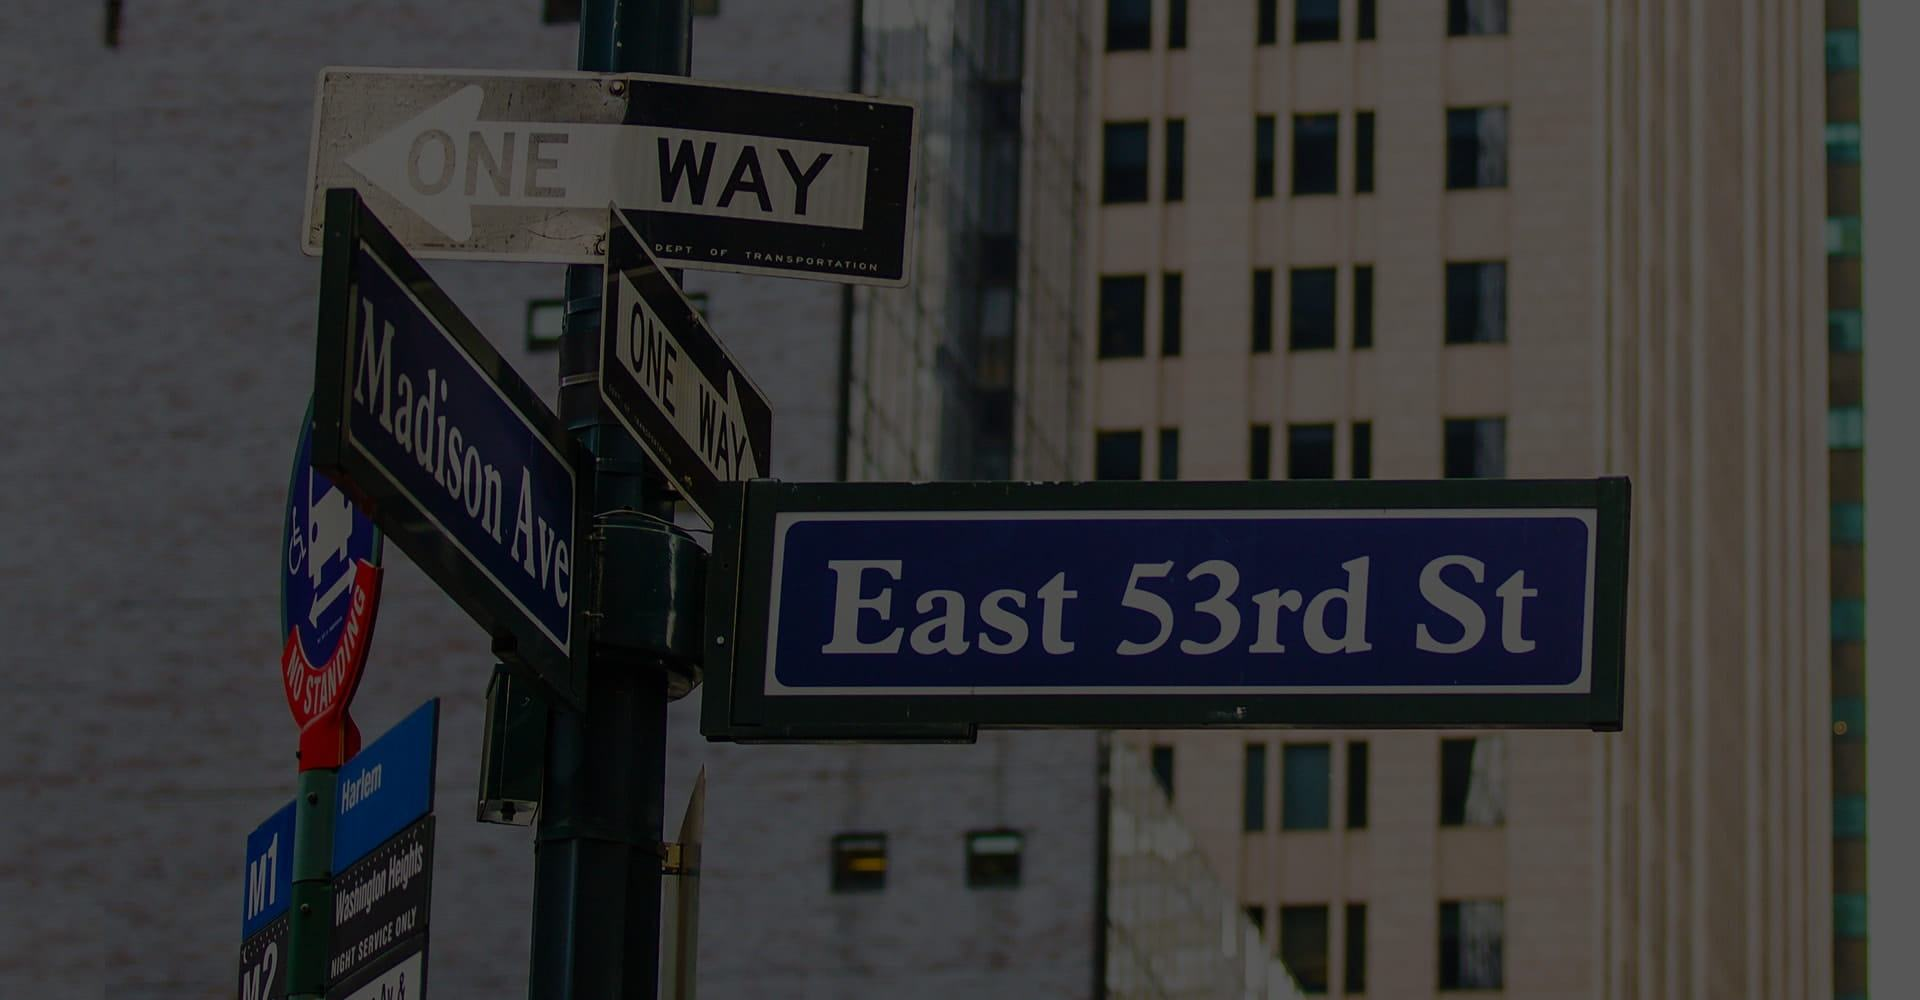 Photo of New York street signs, showing the location of Midtown Dental Excellence on Madison avenue.